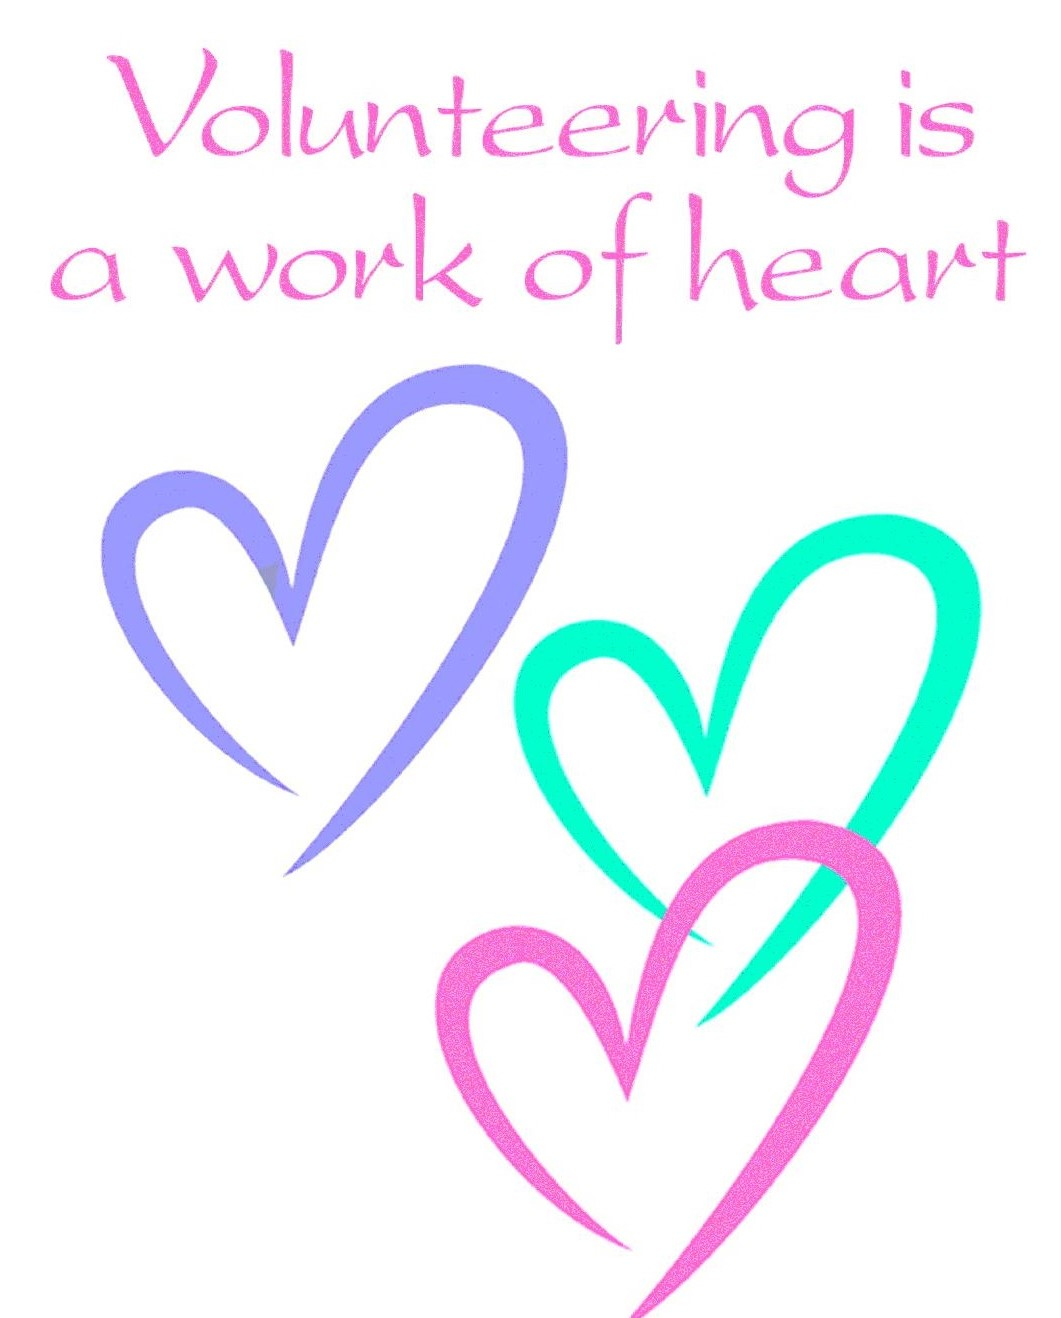 Volunteering is a work of the heart